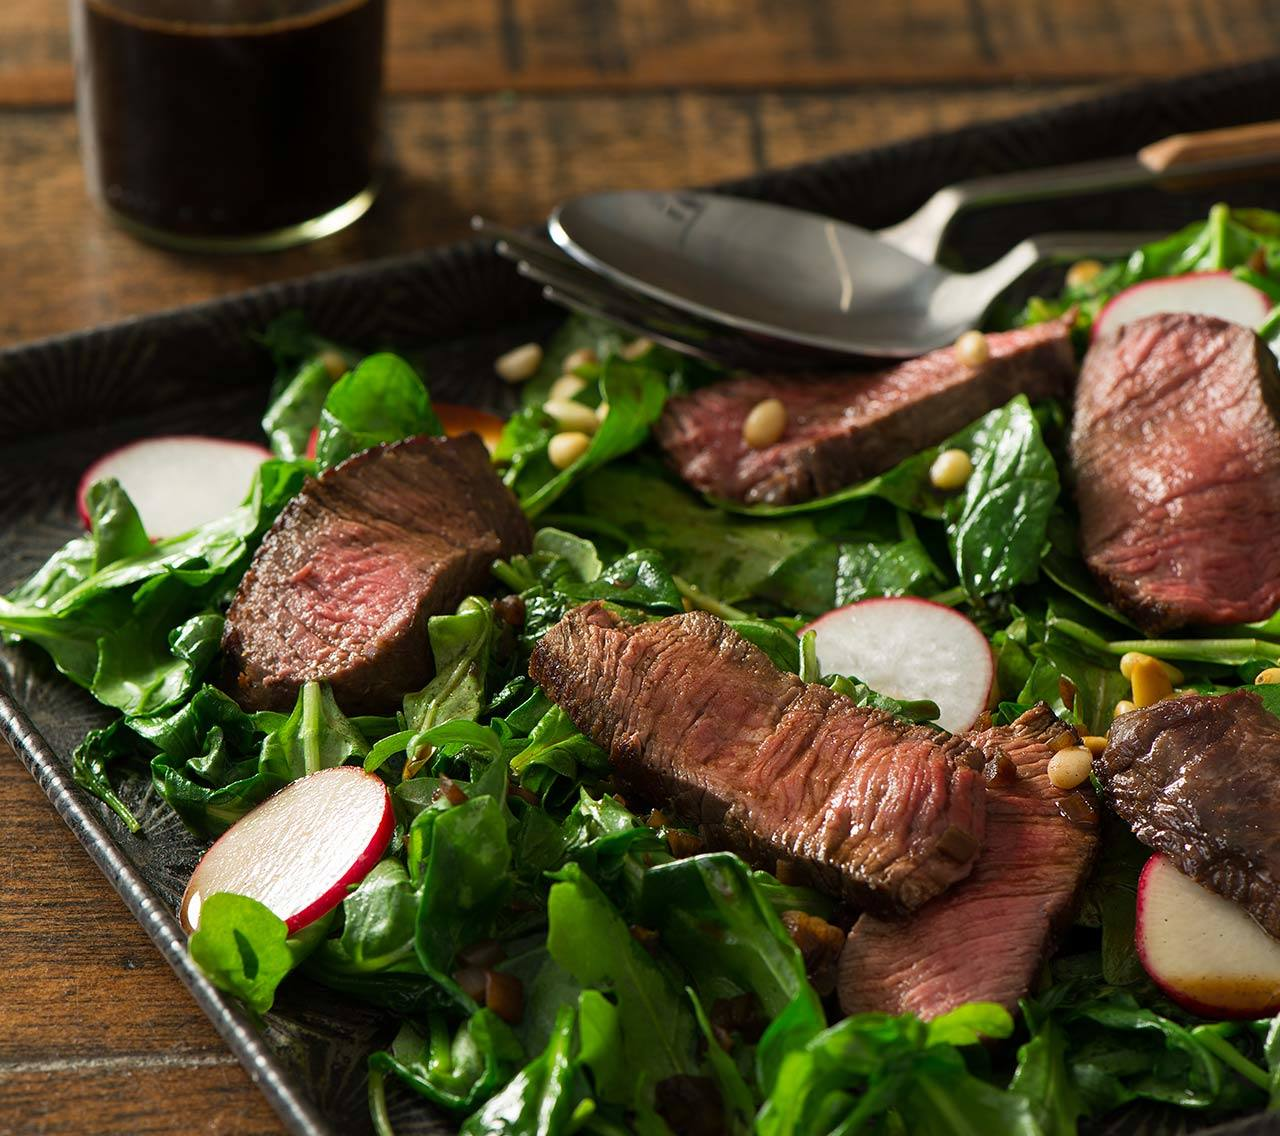 Pan-Seared Beef with Shallot Vinaigrette & Baby Spinach